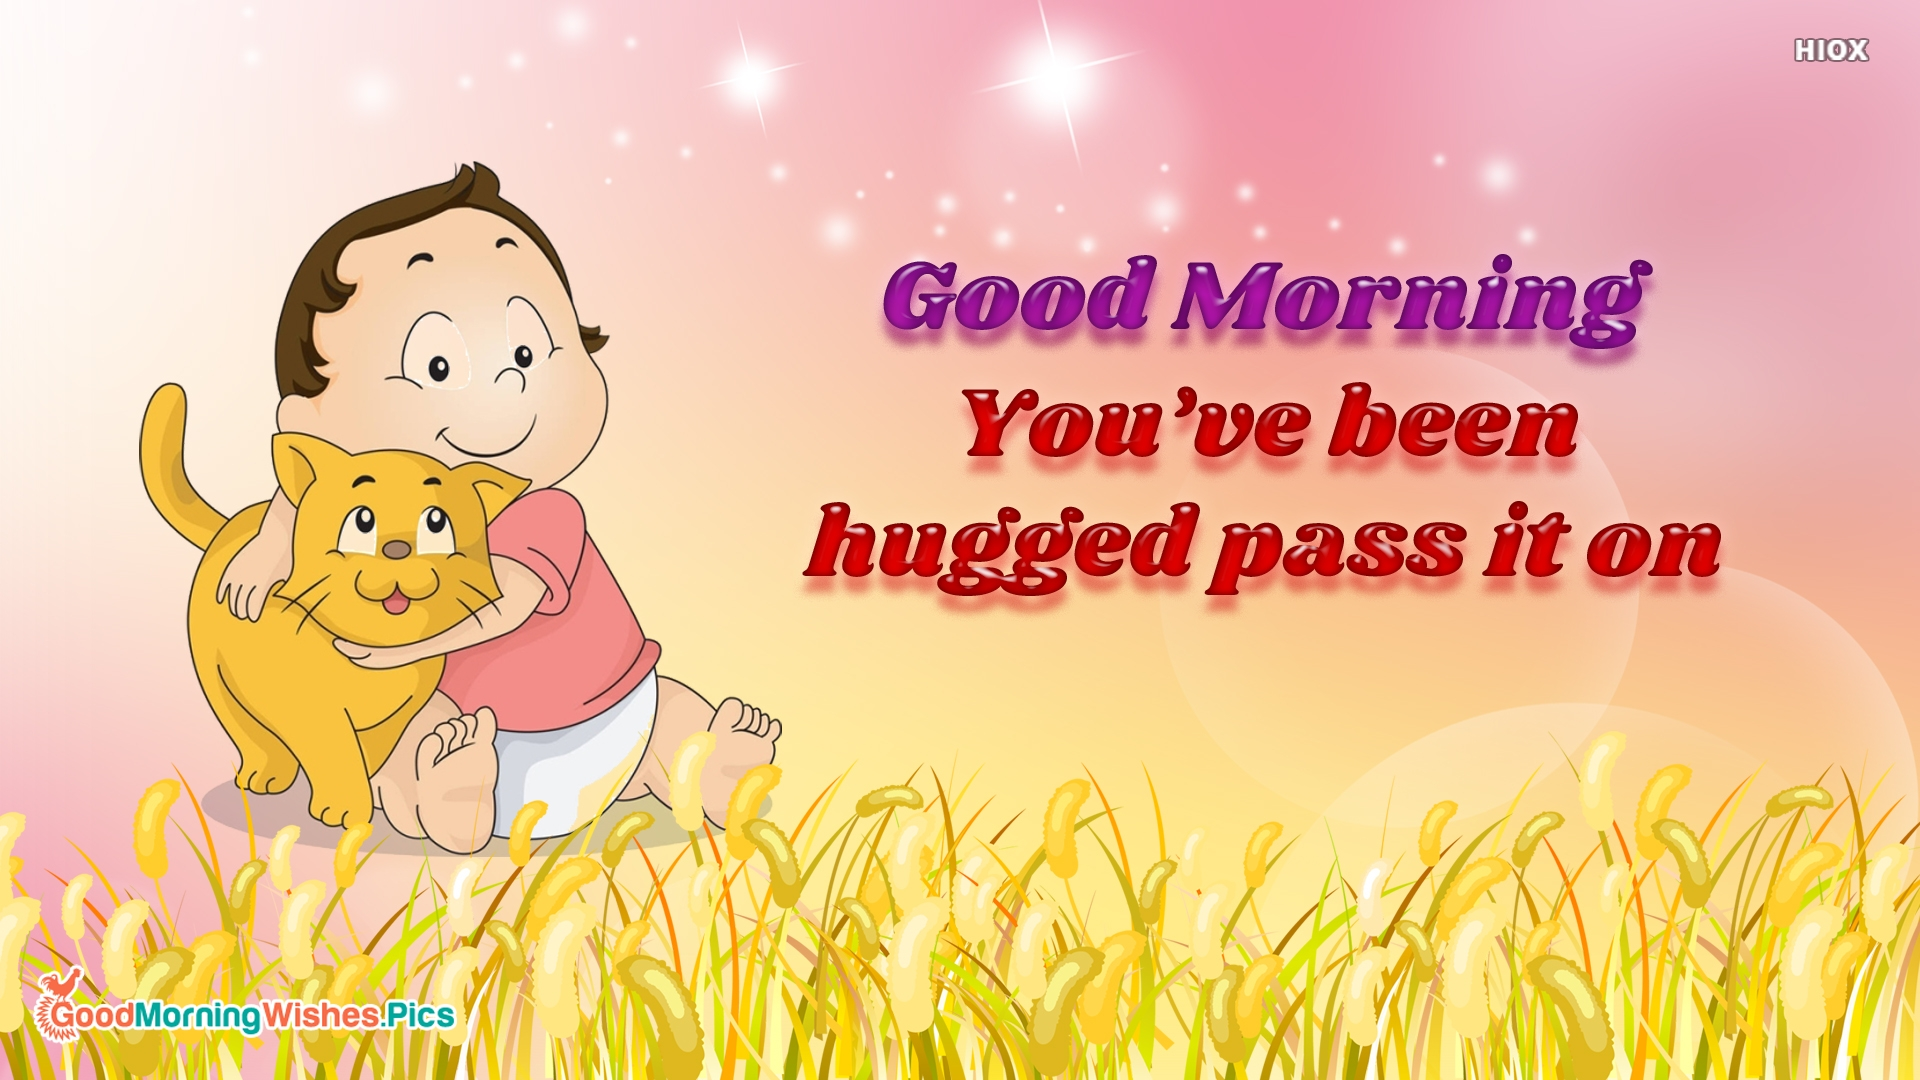 Good Morning You've Been Hugged Pass It On!